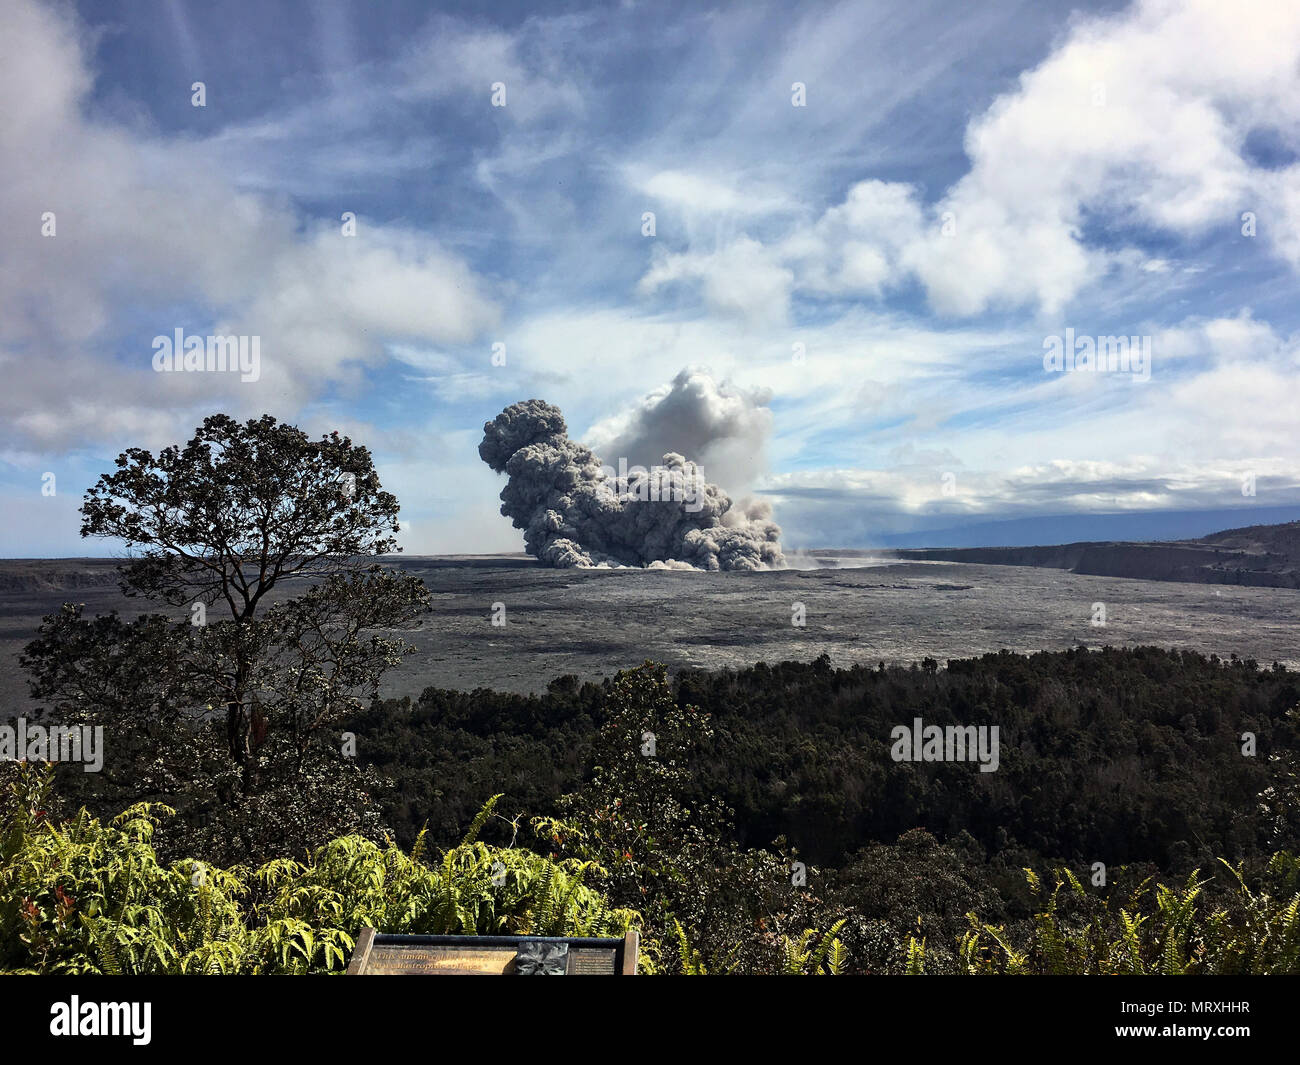 An ash plumes rises from the Halemaumau crater at the summit of the Kilauea volcano May 25, 2018 in Pahoa, Hawaii. Stock Photo